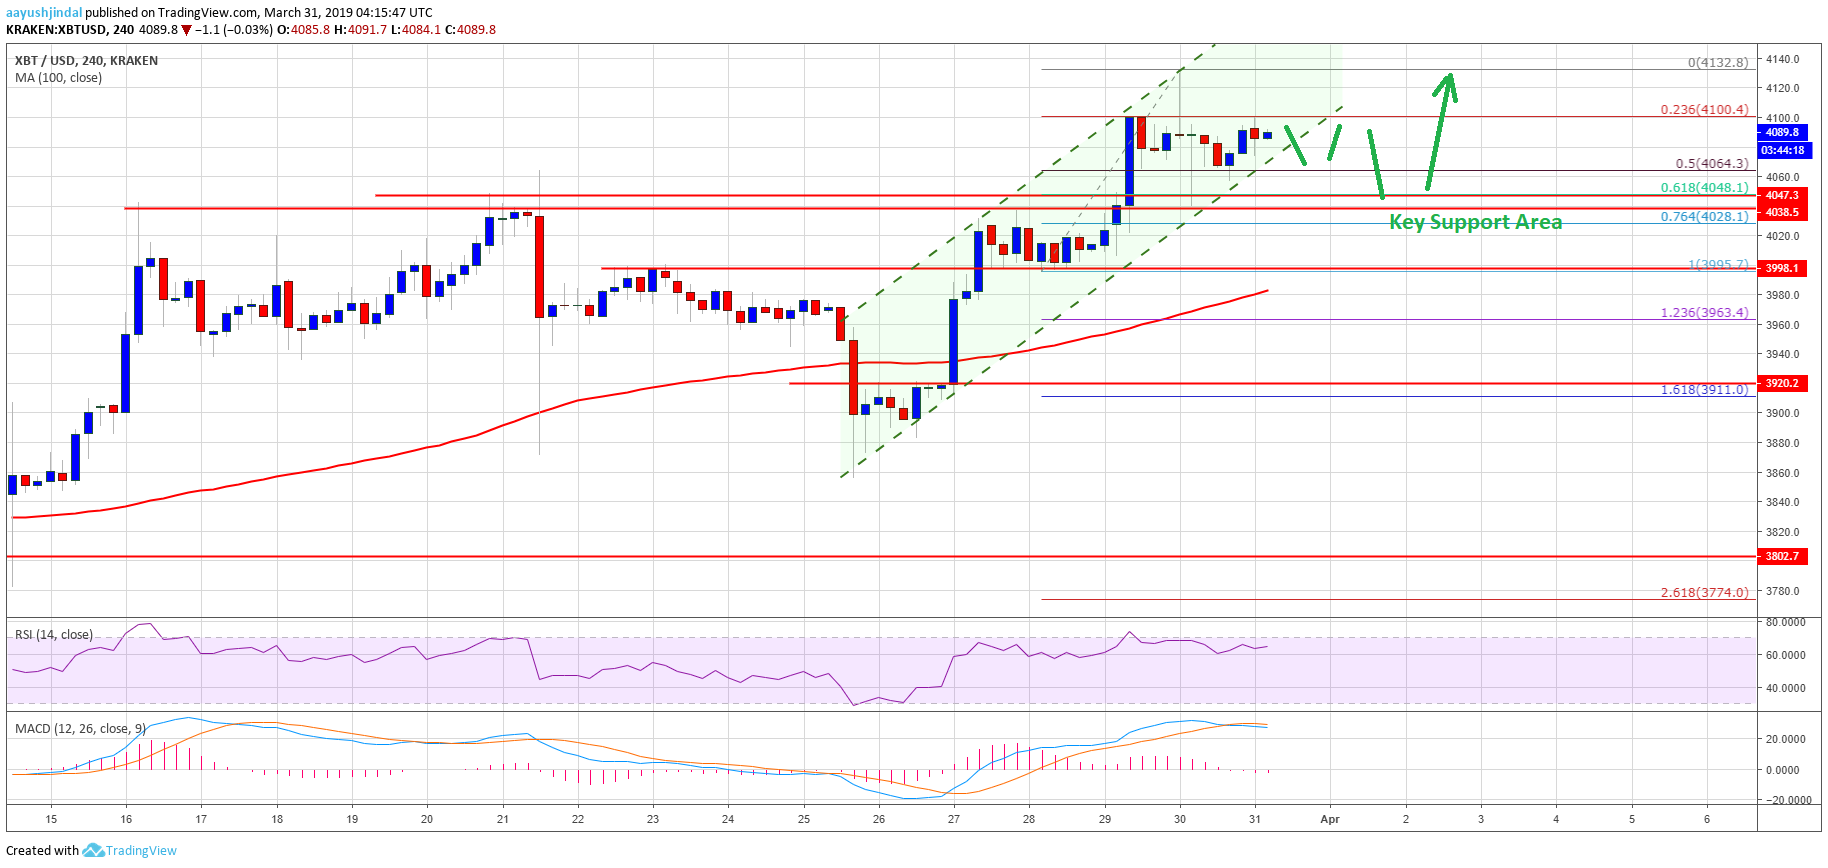 Bitcoin BTC Price Trend Overwhelmingly Bullish Bulls Aim 4400